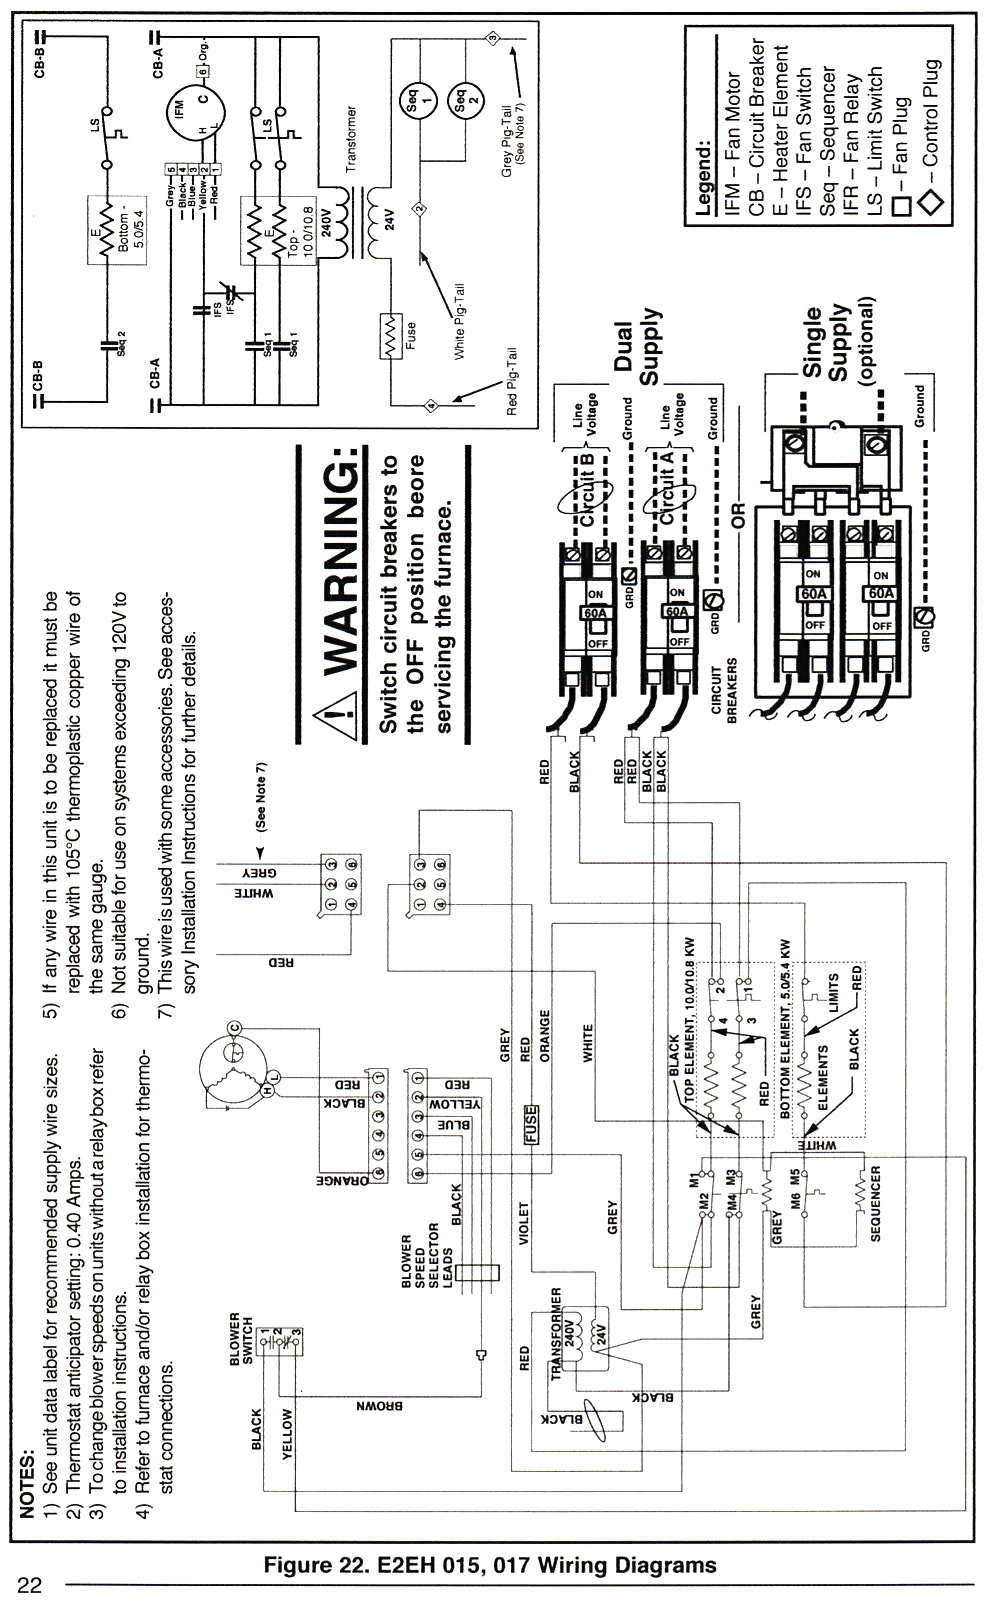 intertherm furnace wiring schematic solution of your wiring